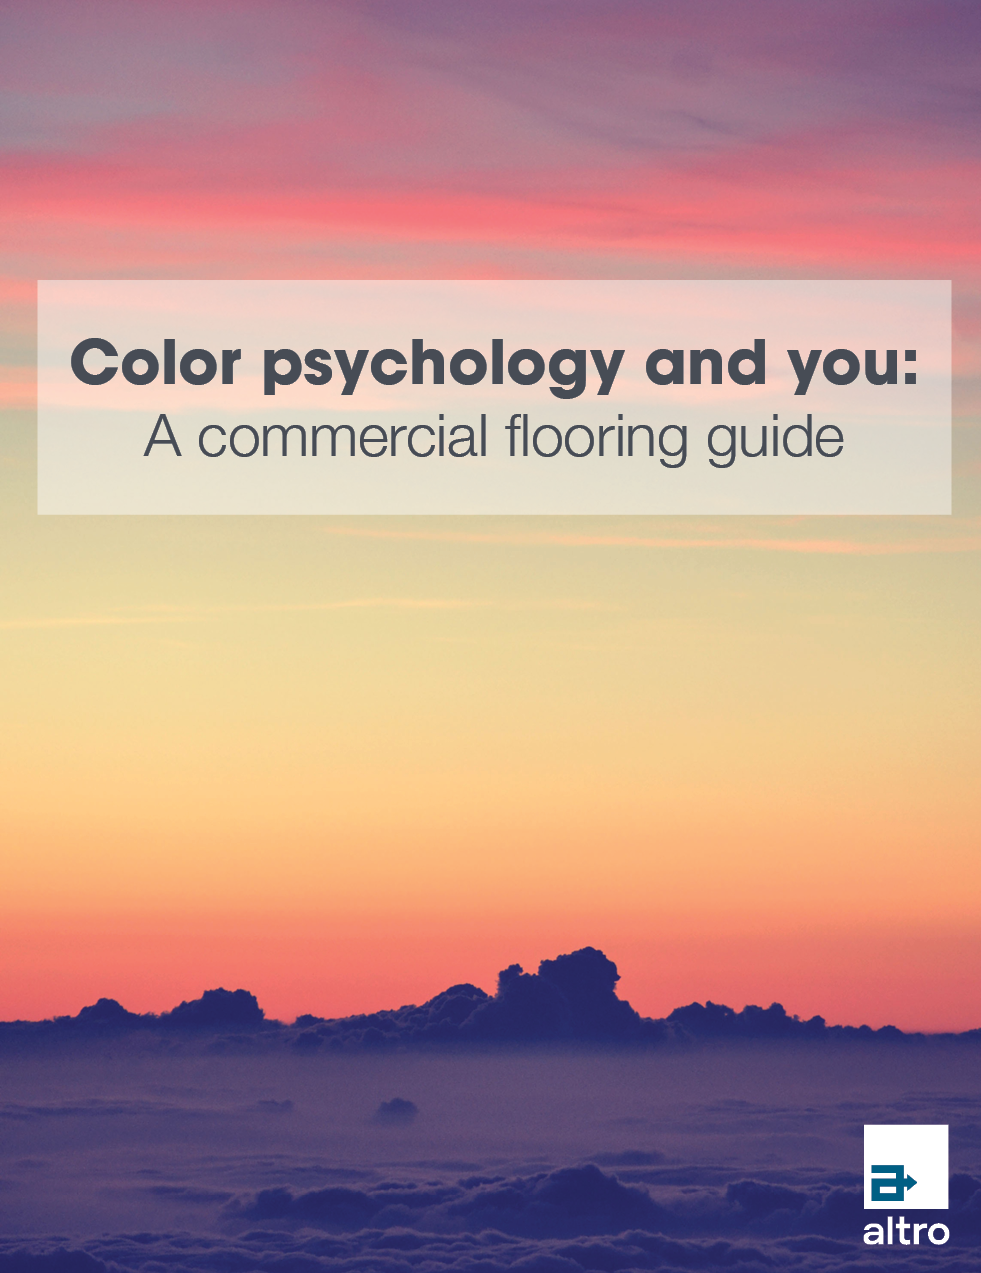 From muted to vibrant hues, color has an effect on us